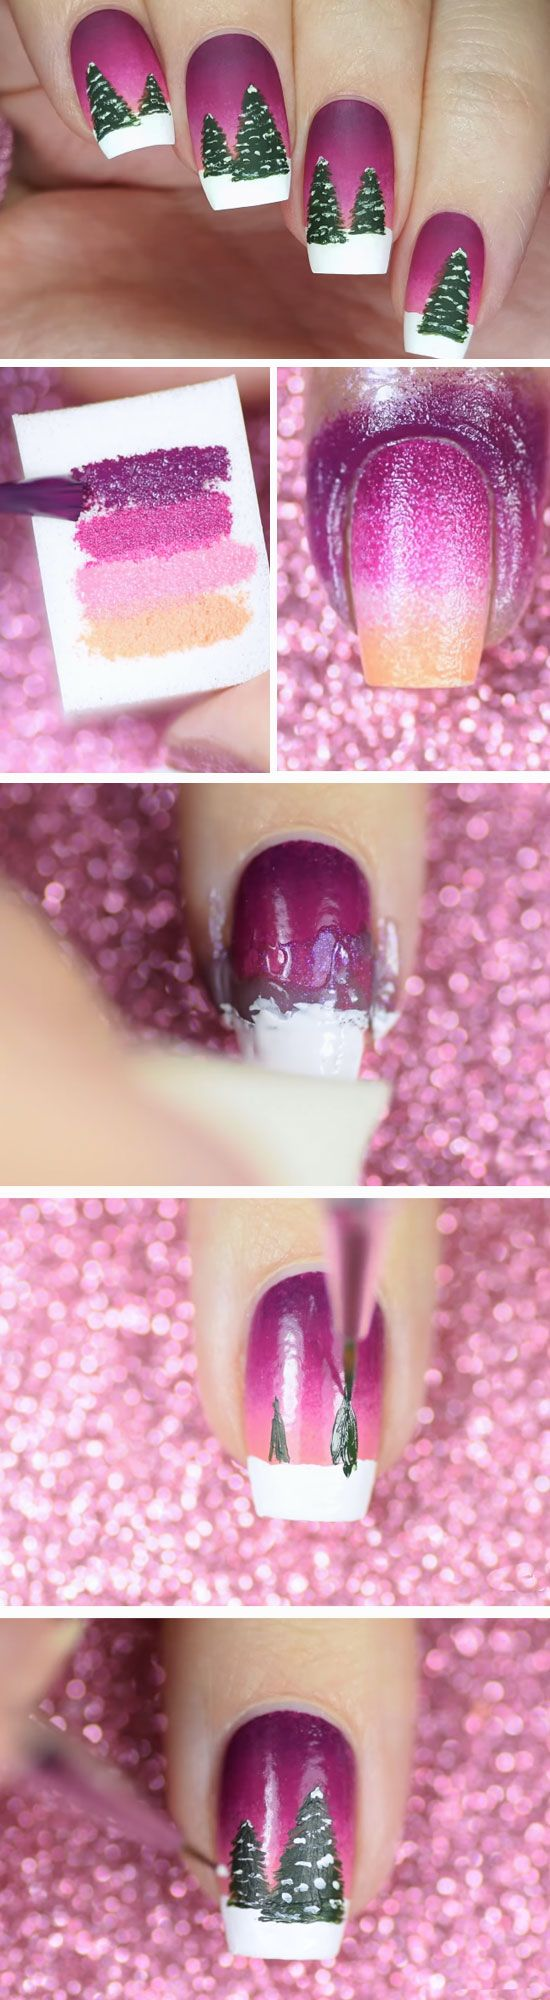 Snowy Tree Landscape | Cute Holiday Nail Art Ideas Christmas Design